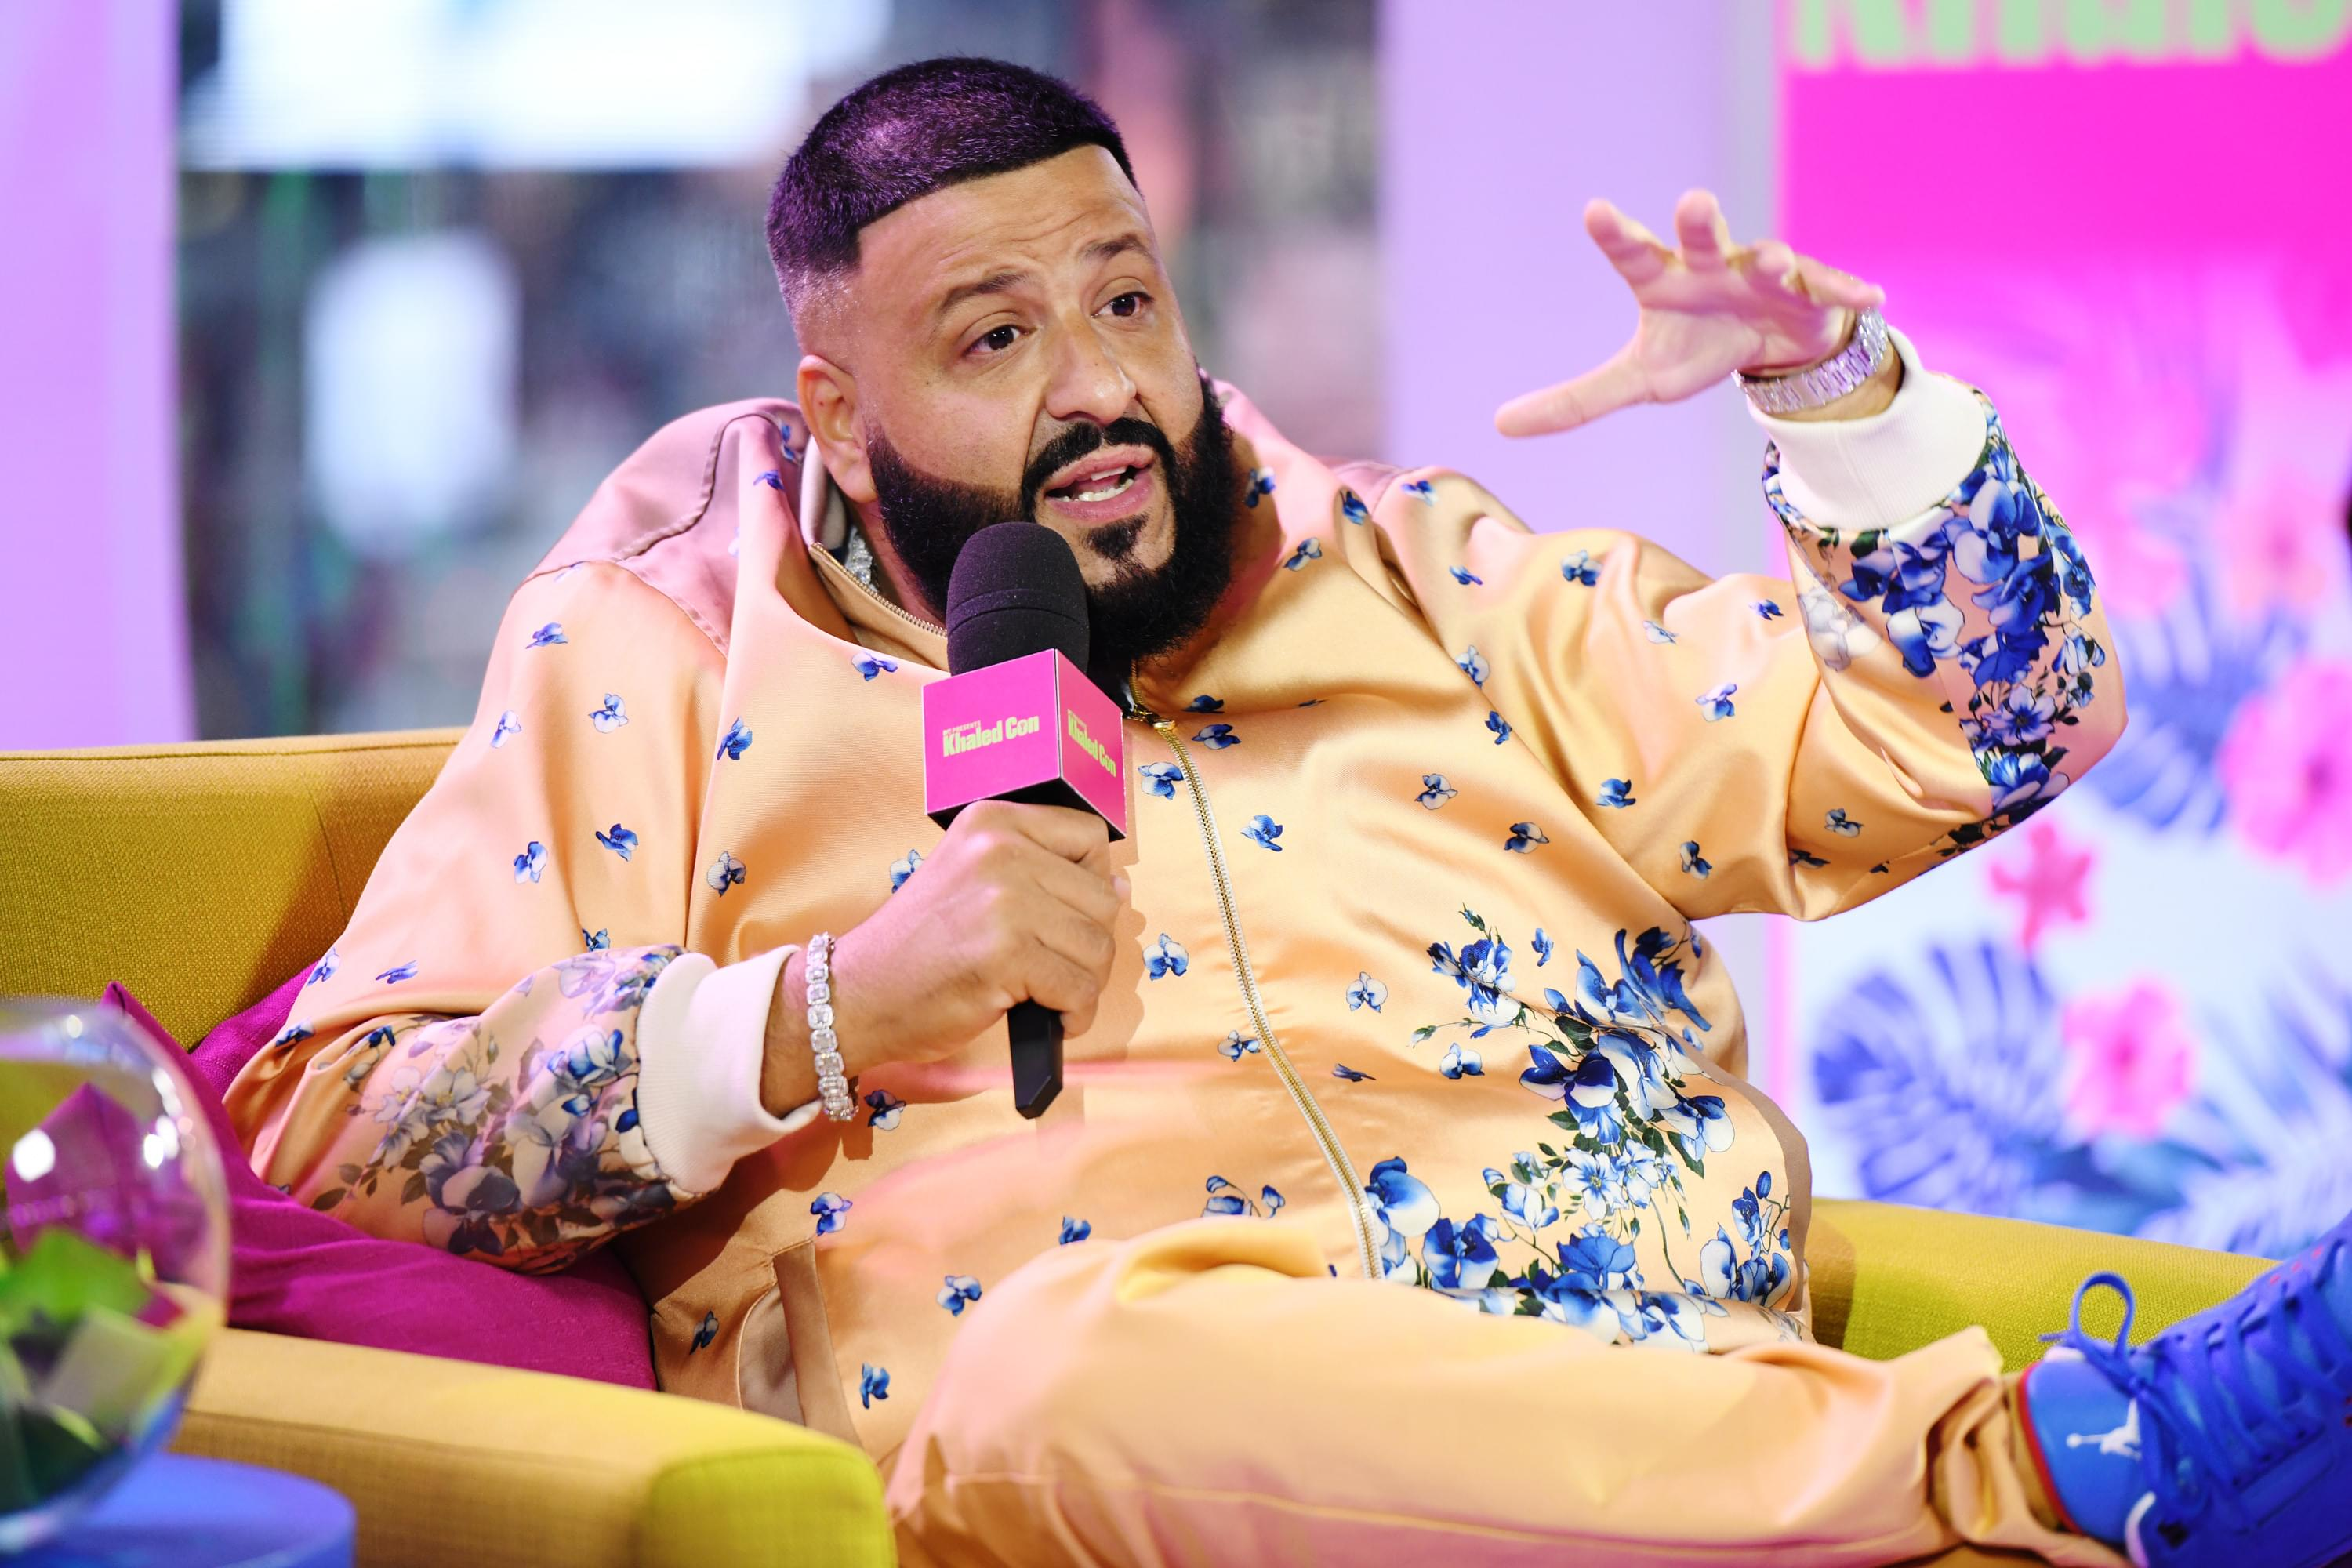 DJ Khaled Throws A Fit After Album Comes In At No. 2